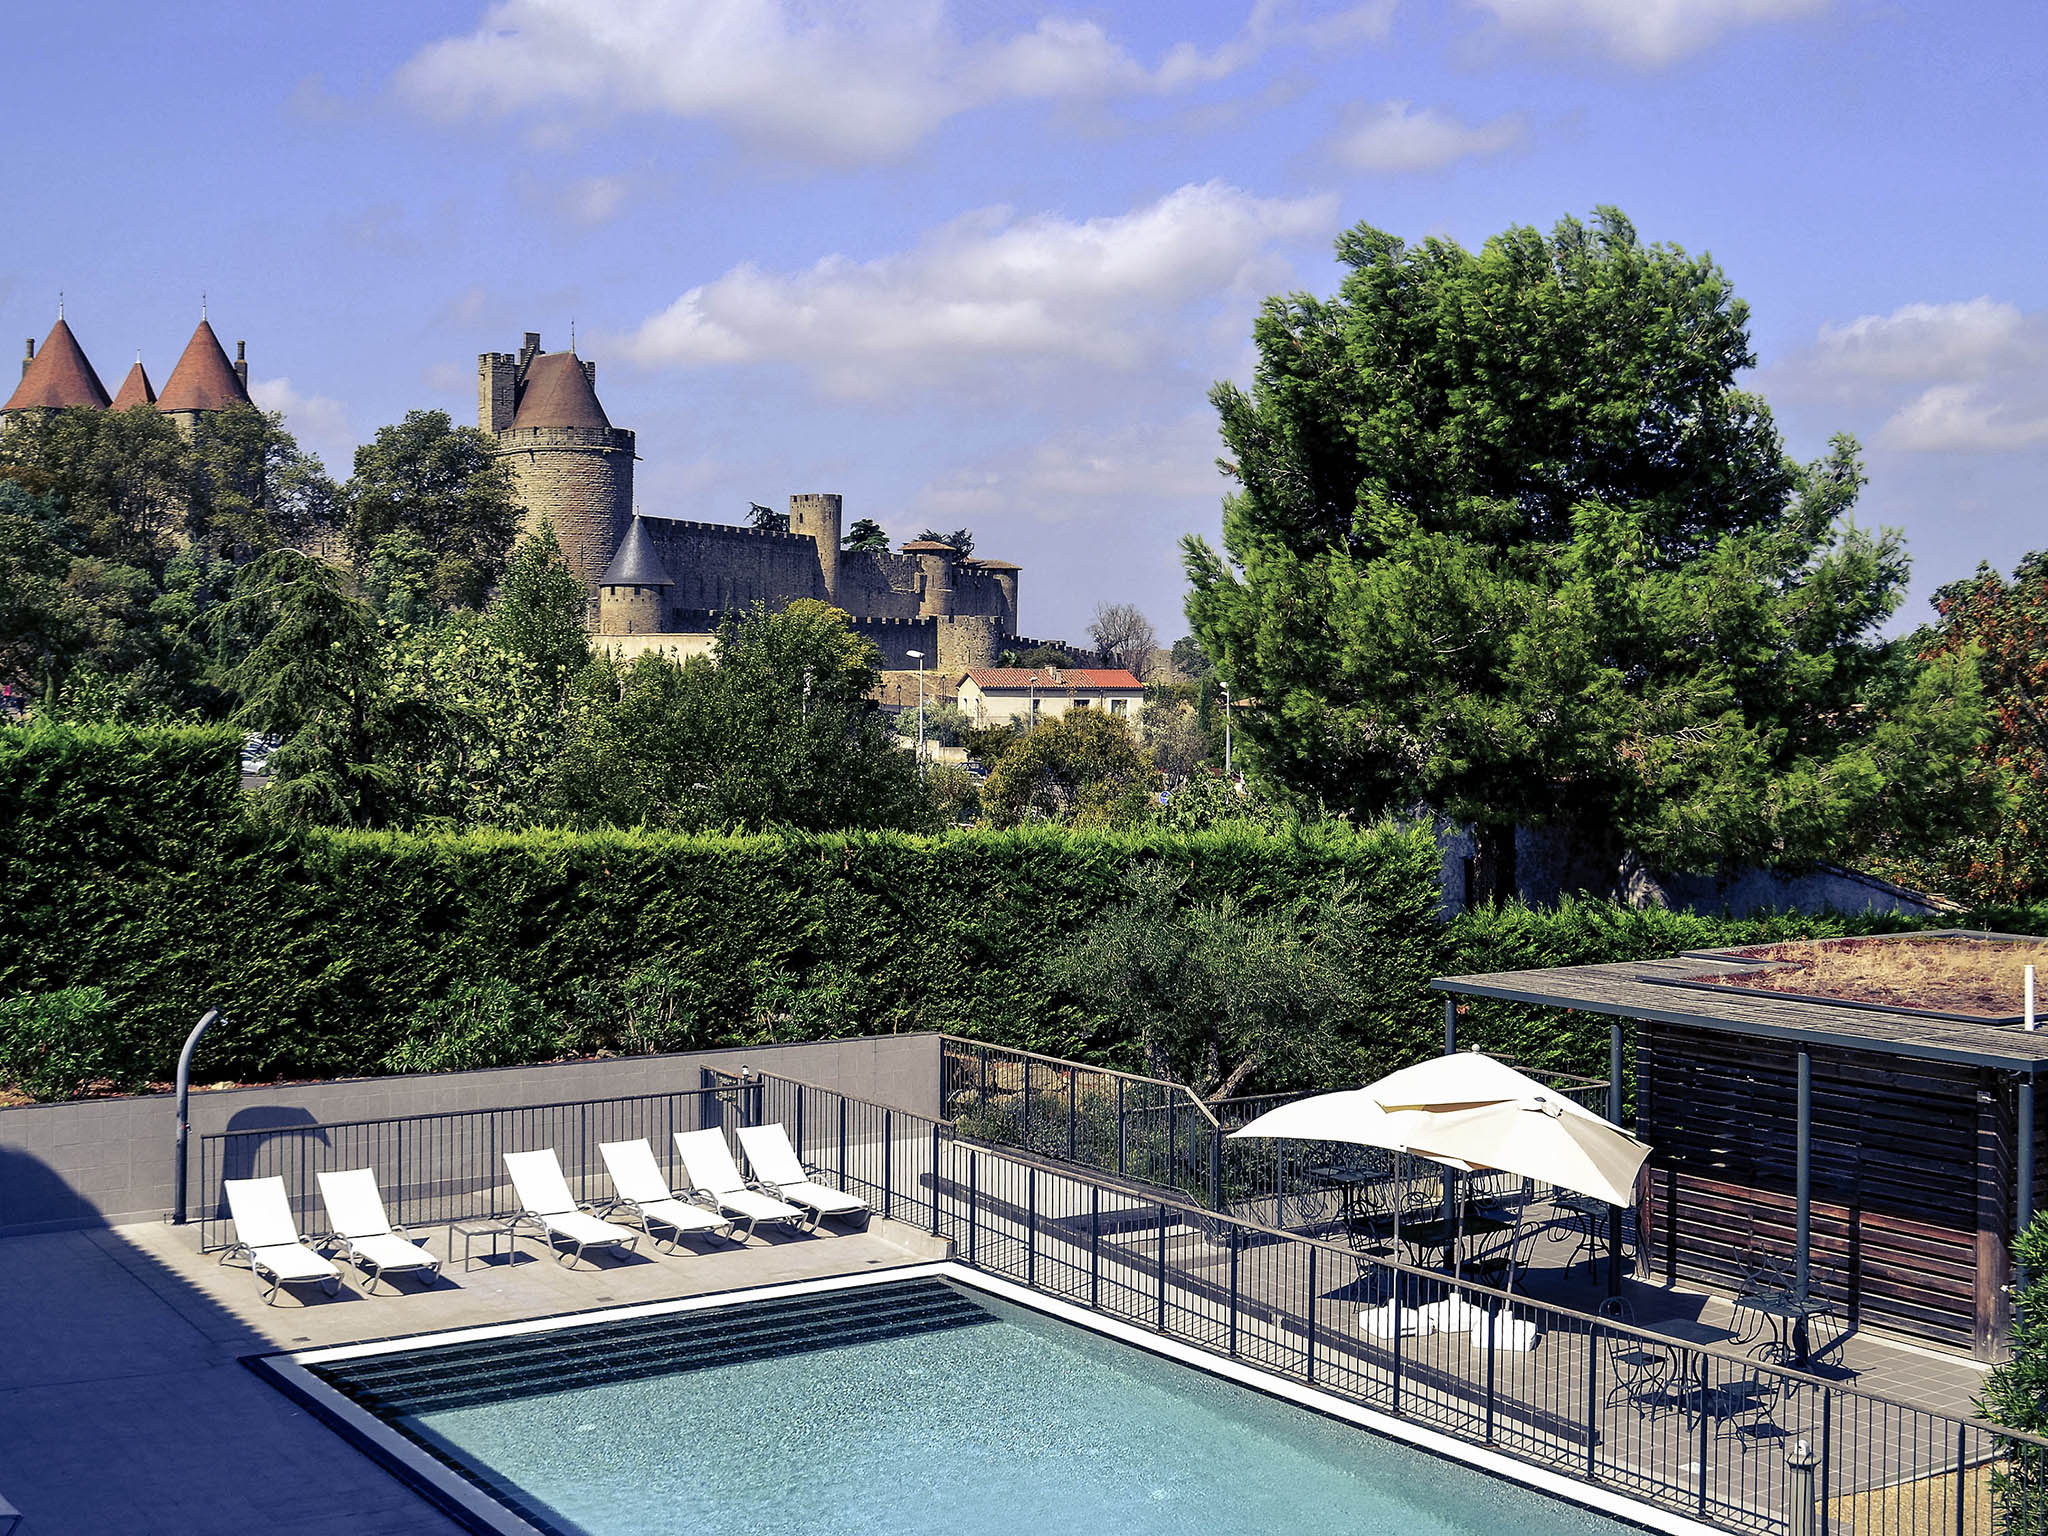 Hotel en carcassonne h tel mercure carcassonne la cite for Hotels carcassonne